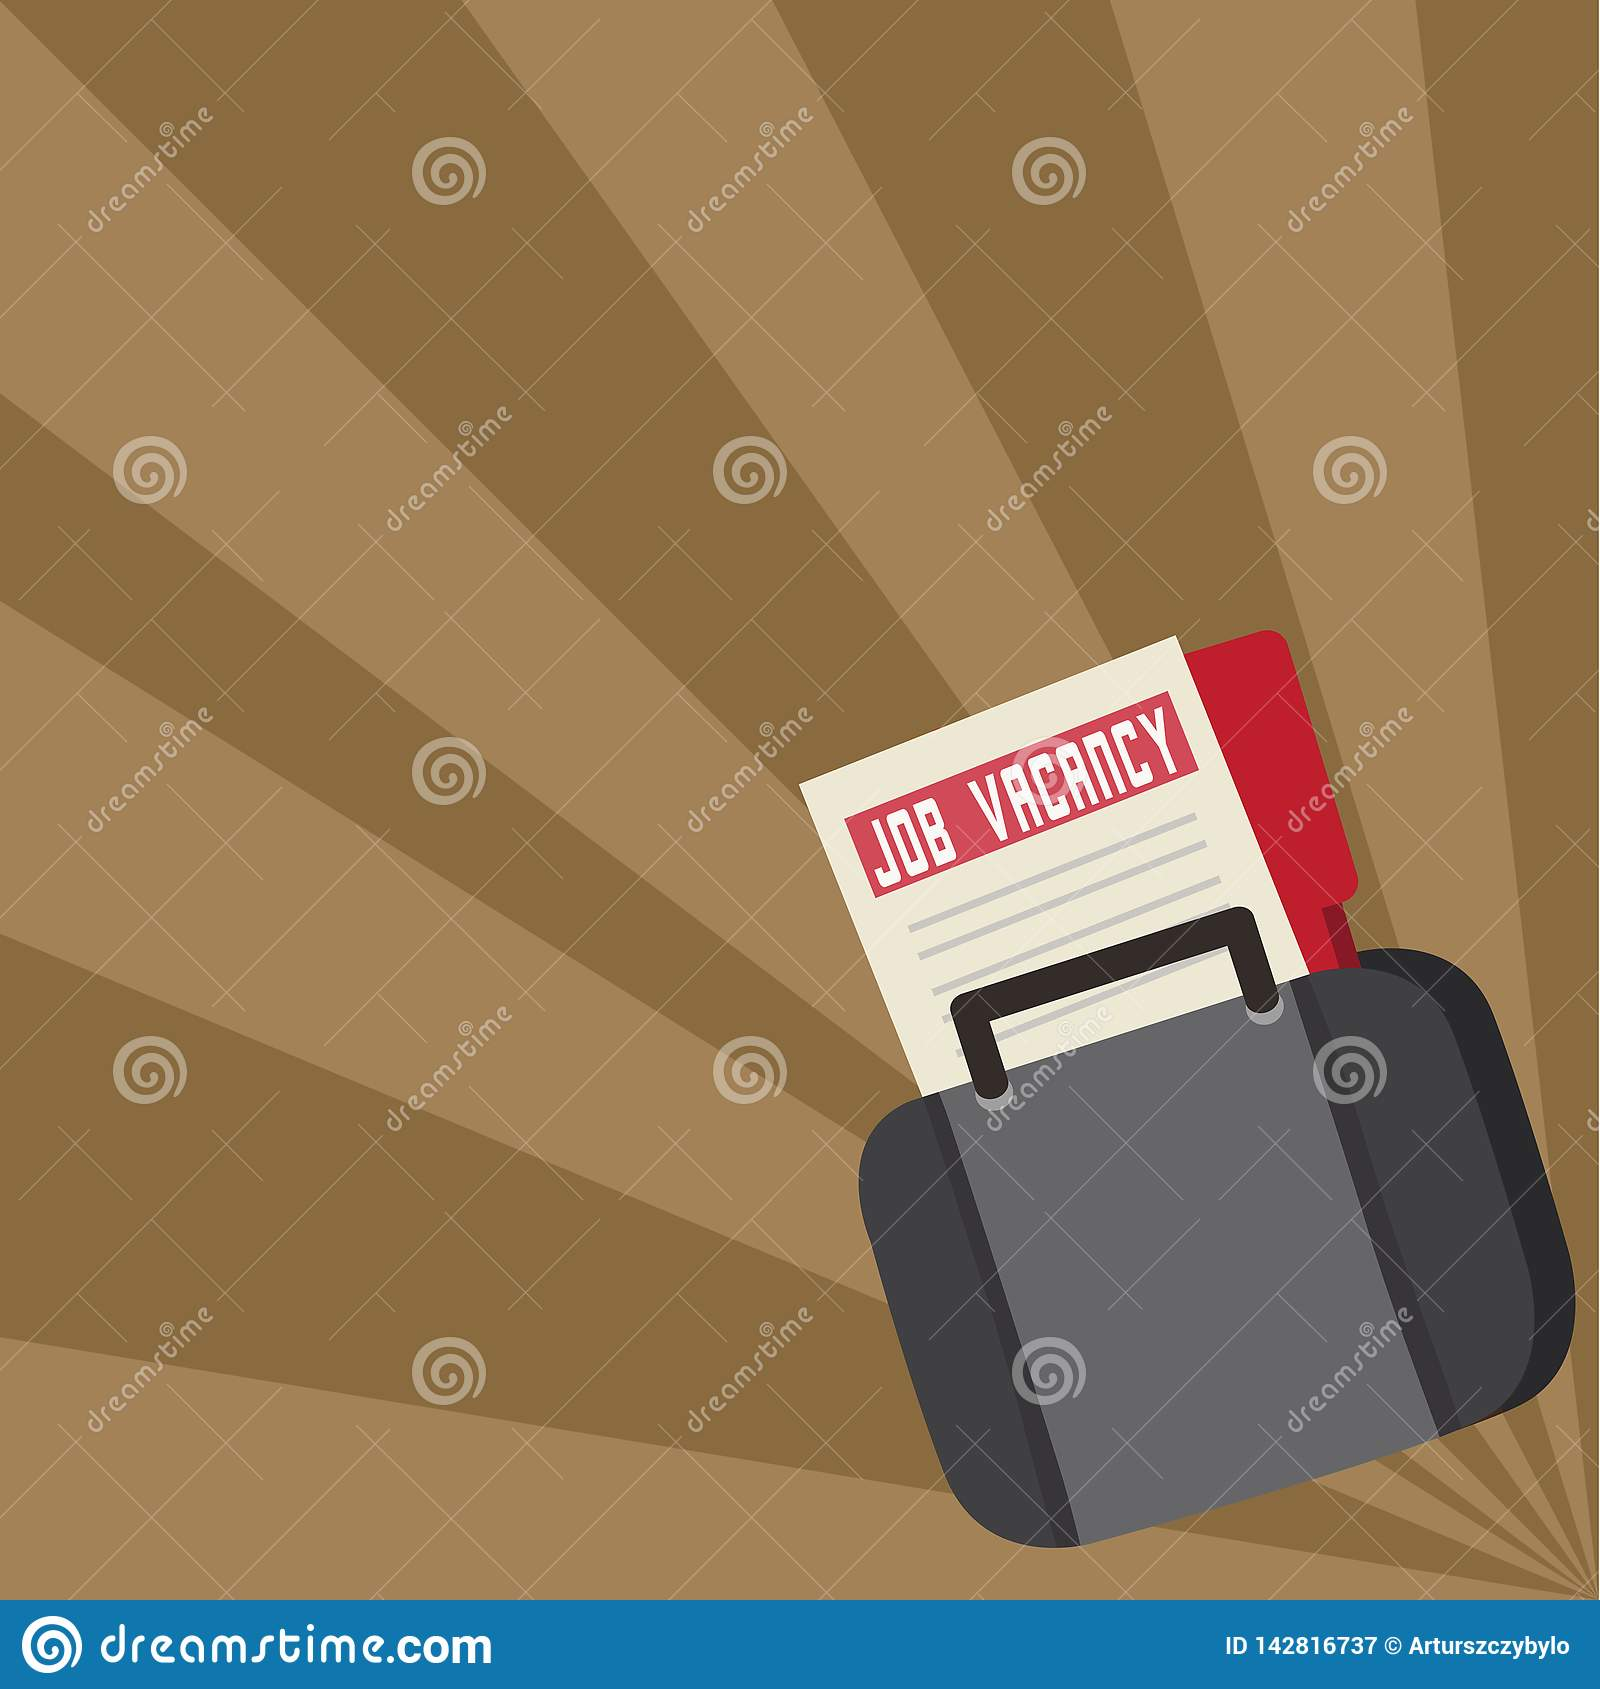 Job Seeker Vacancy File and Folder Inside a Bag. Applicant Portfolio Tucked in a Briefcase. Announcement for Employment